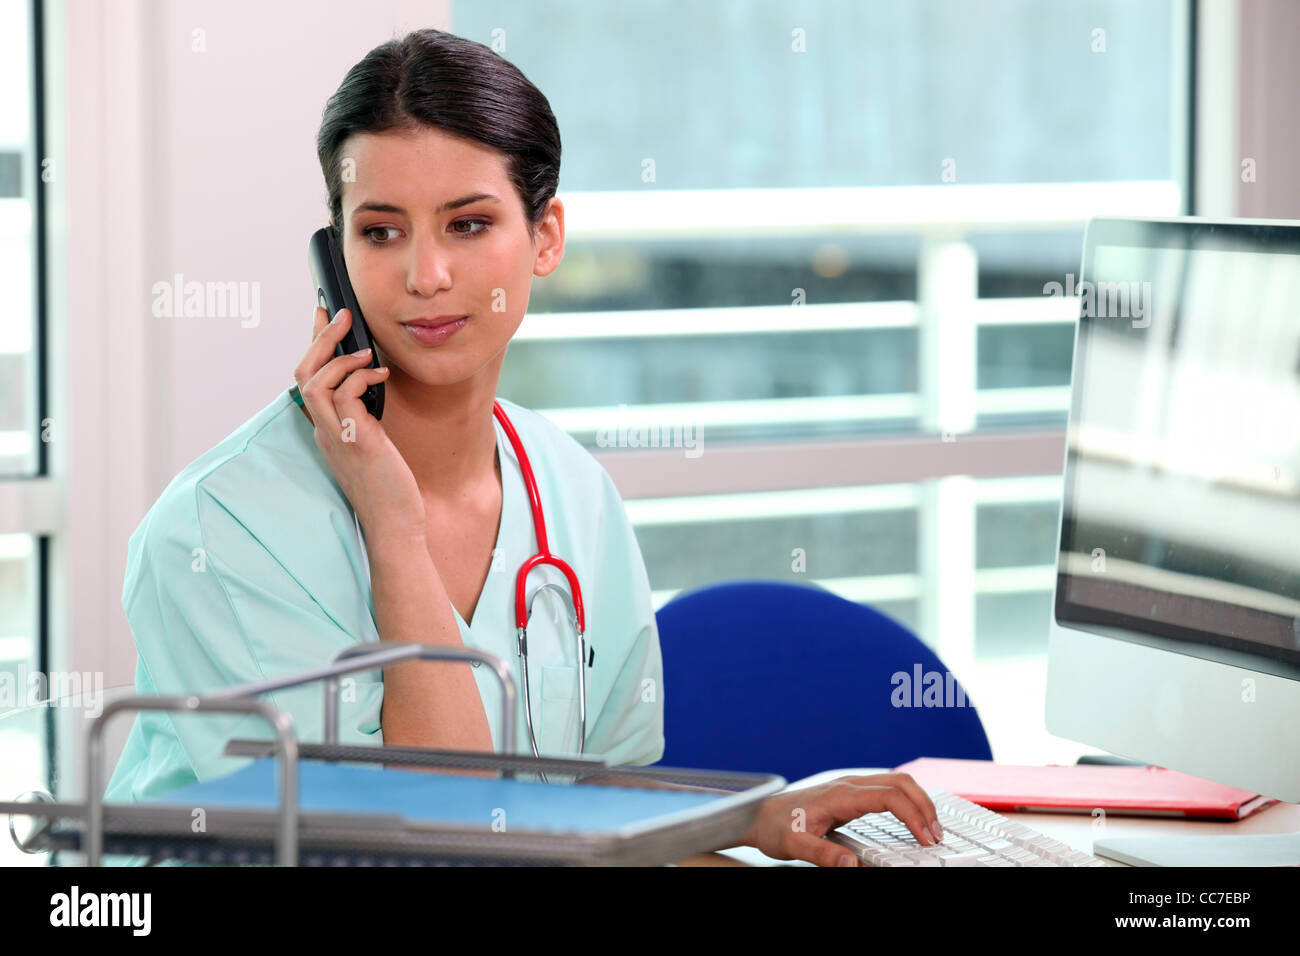 young nurse at phone behind her computer - Stock Image